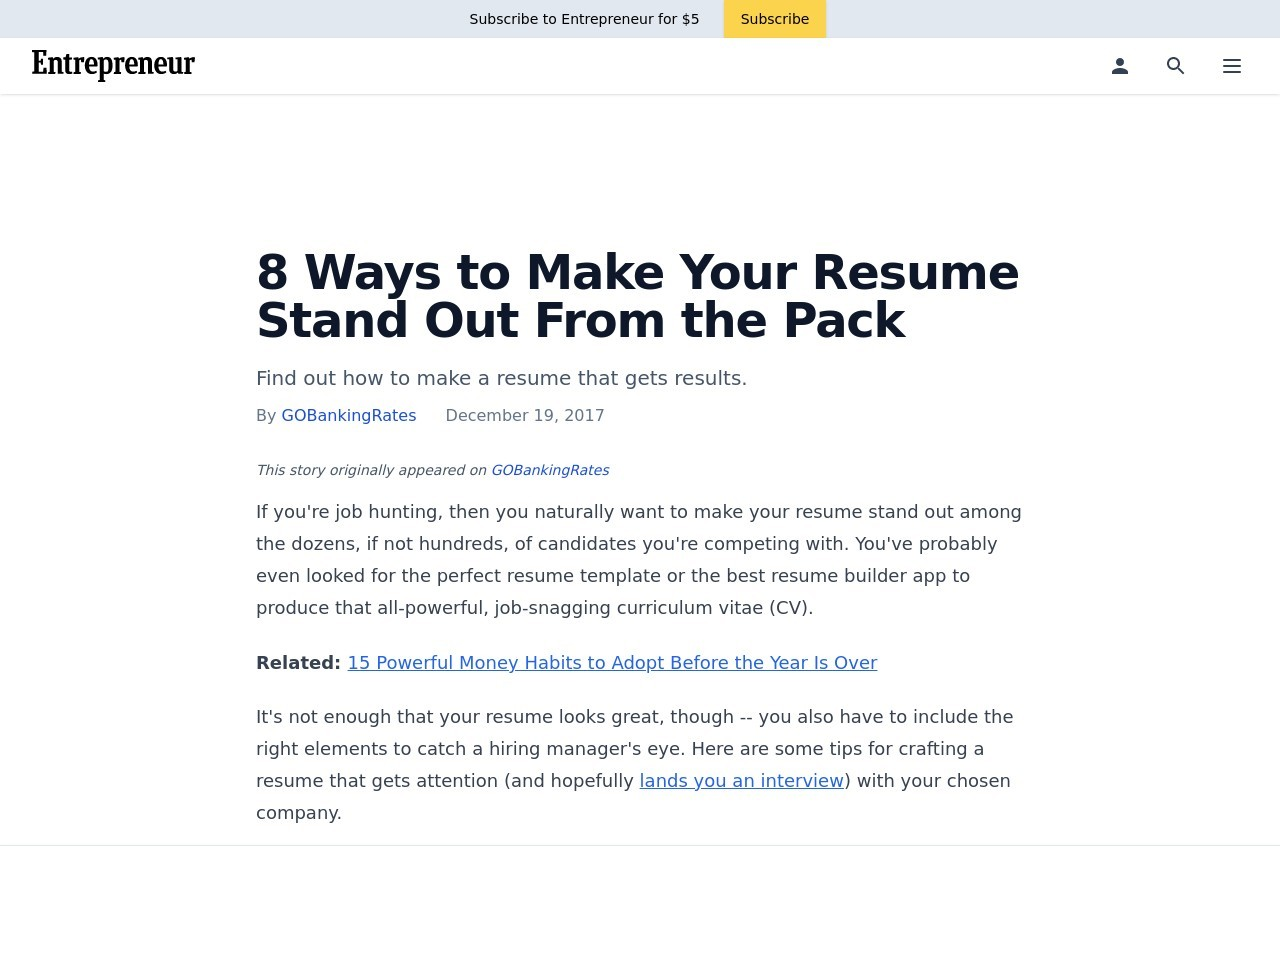 8 Ways to Make Your Resume Stand Out From the Pack